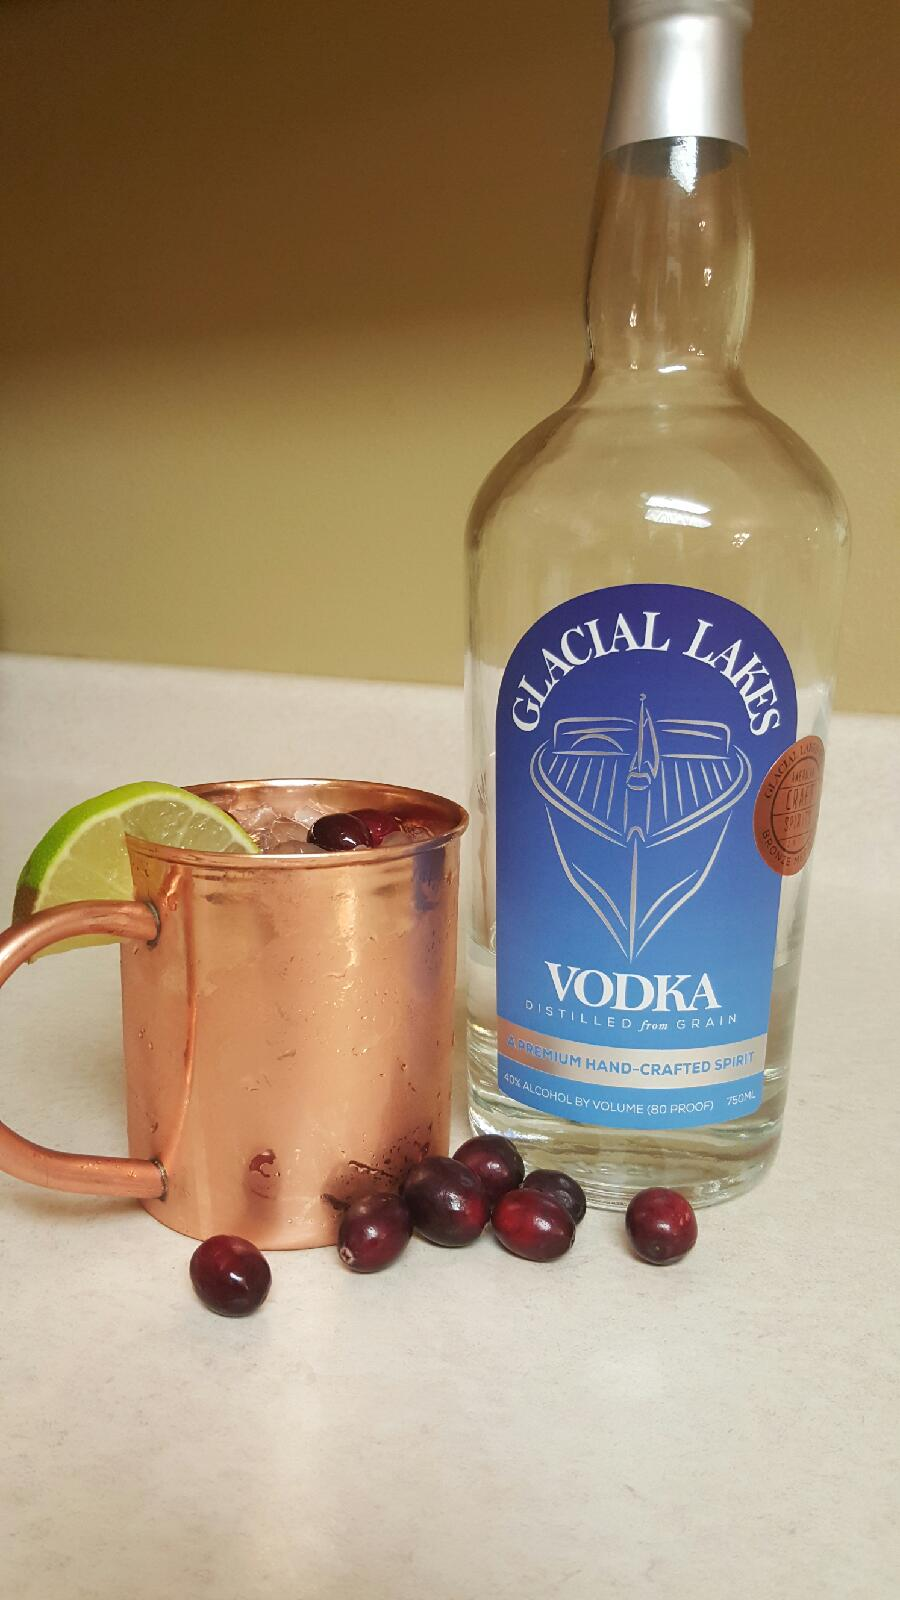 1.5 oz GLACIAL LAKES VODKA   1.5 oz cRANBERRY jUICE   fILL WITH CRANBERRY GINGER BEER   SPLASH OF lIME jUICE   GARNISH WITH fRESH OR FROZEN CRANBERRIES   sERVE ON CRUSHED ICE